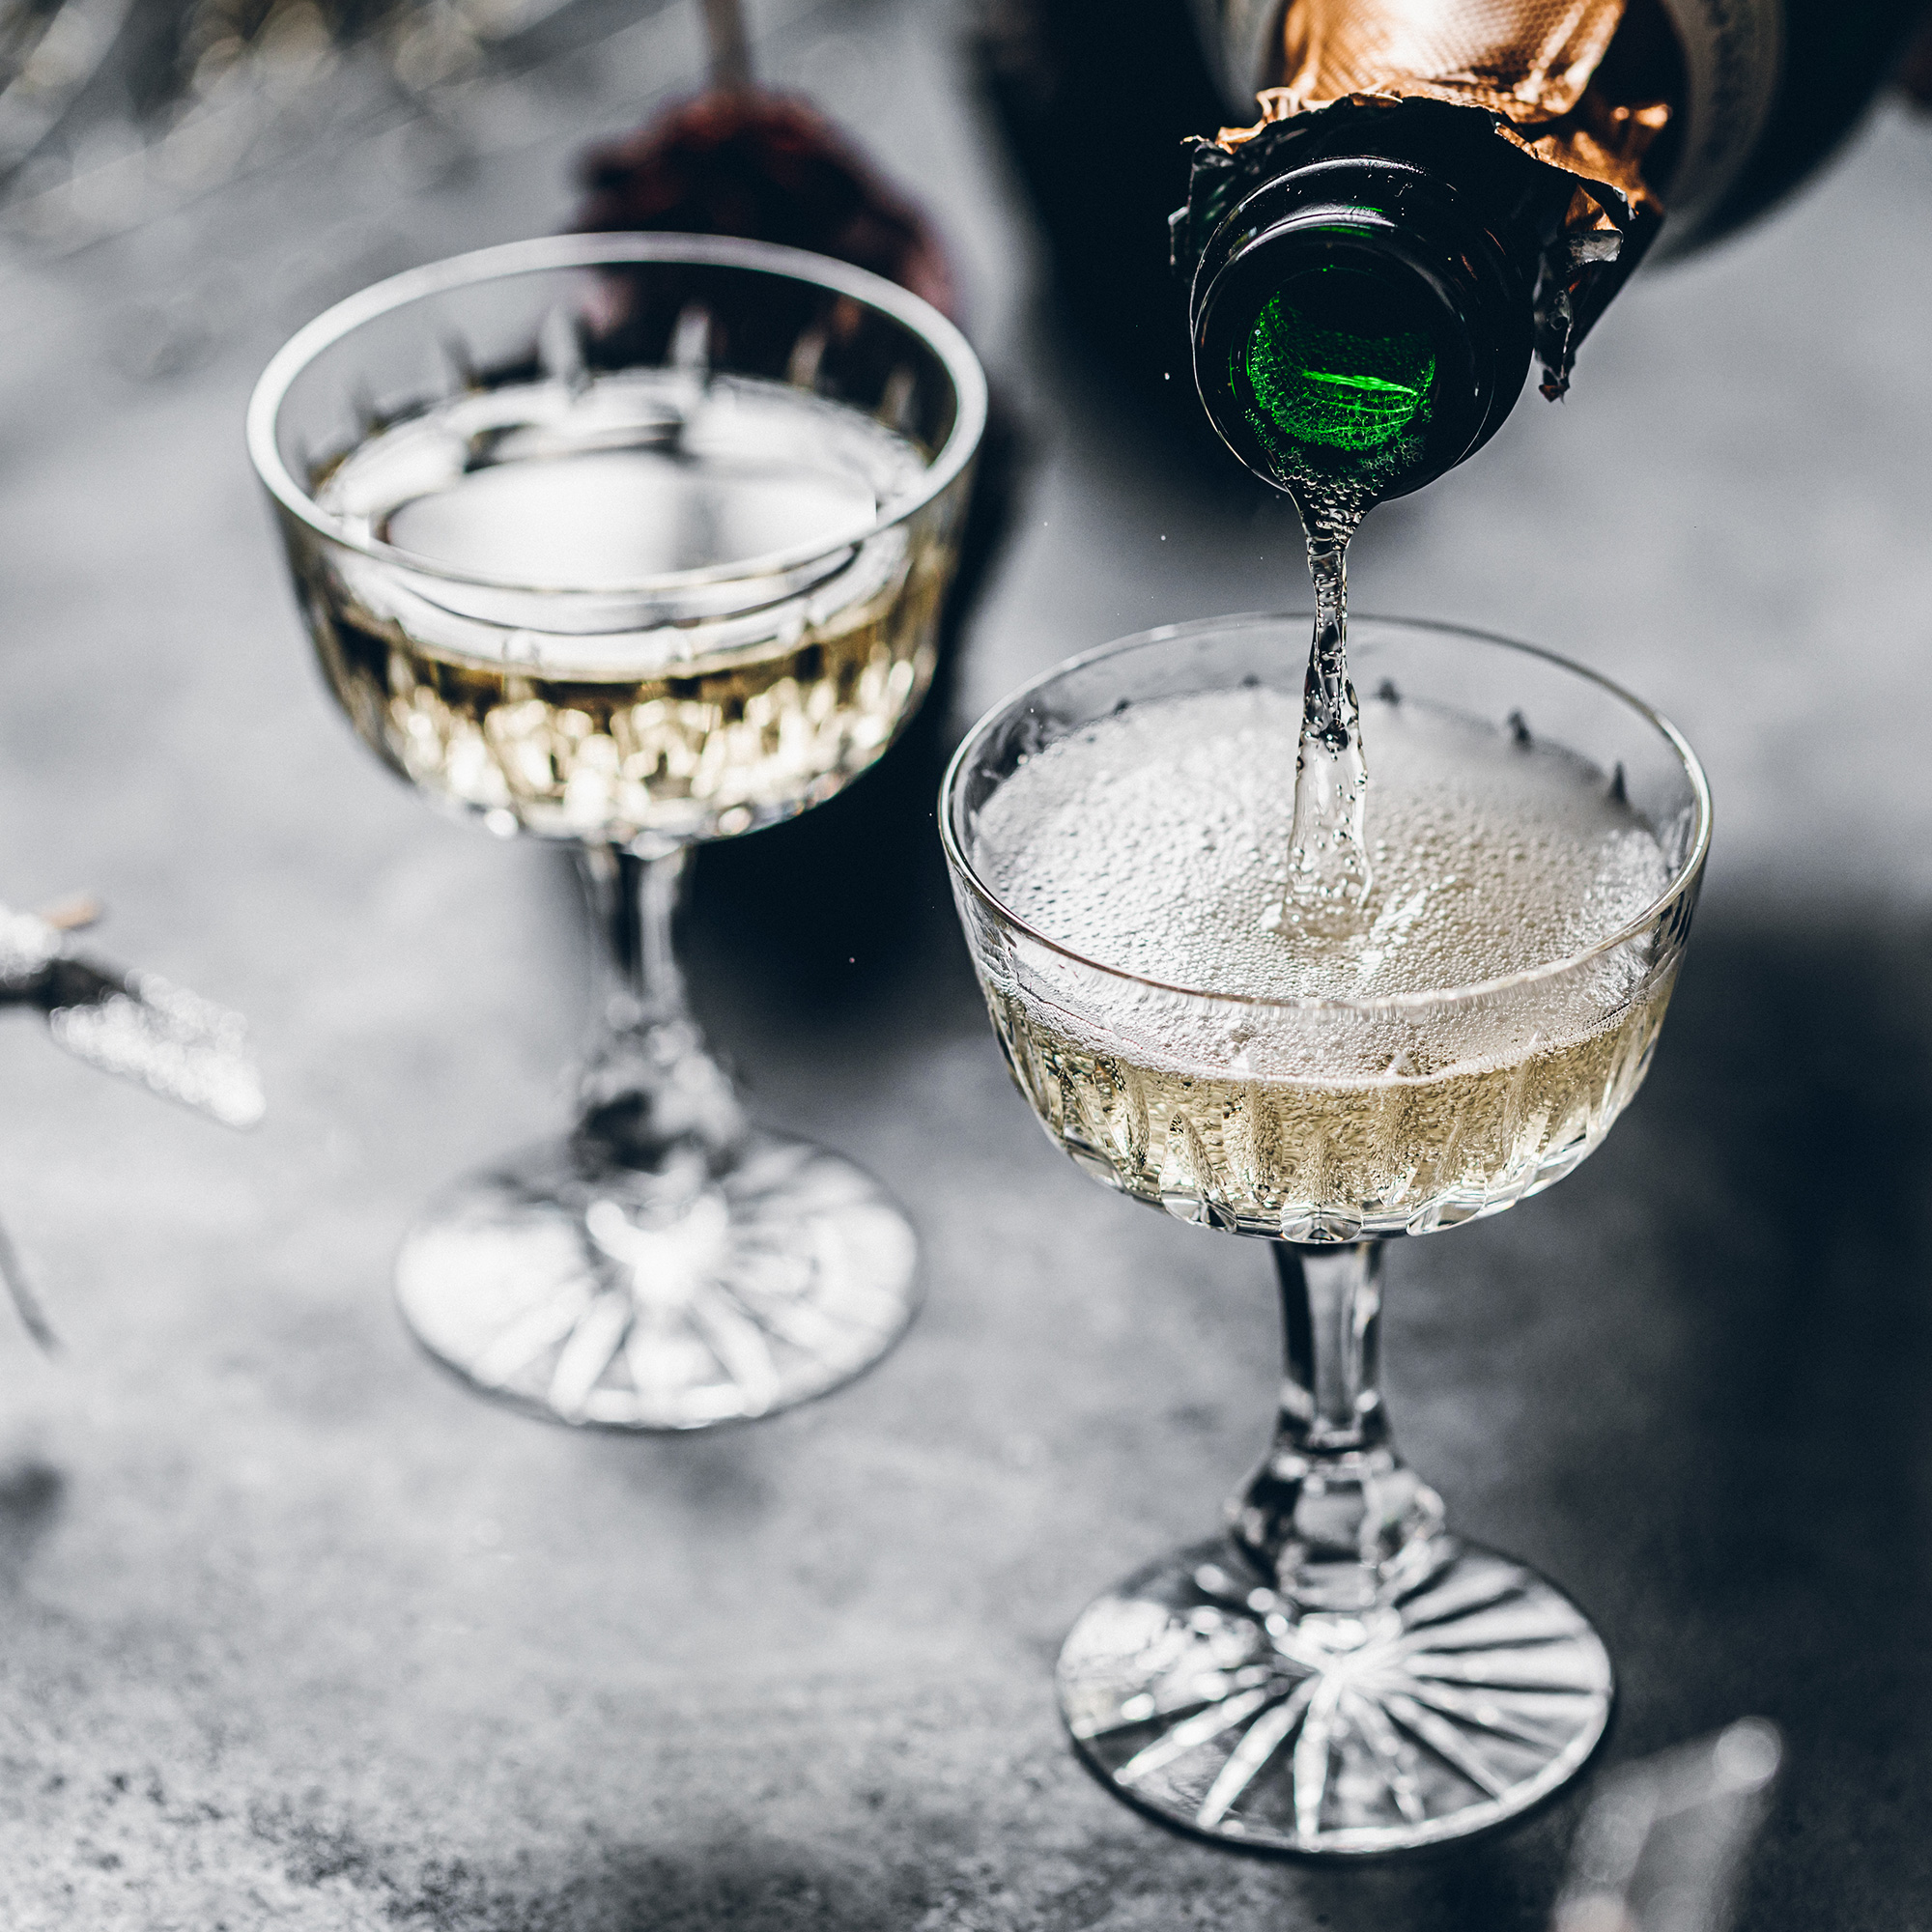 Best Sparkling Wines at Trader Joe's, According to a Sommelier